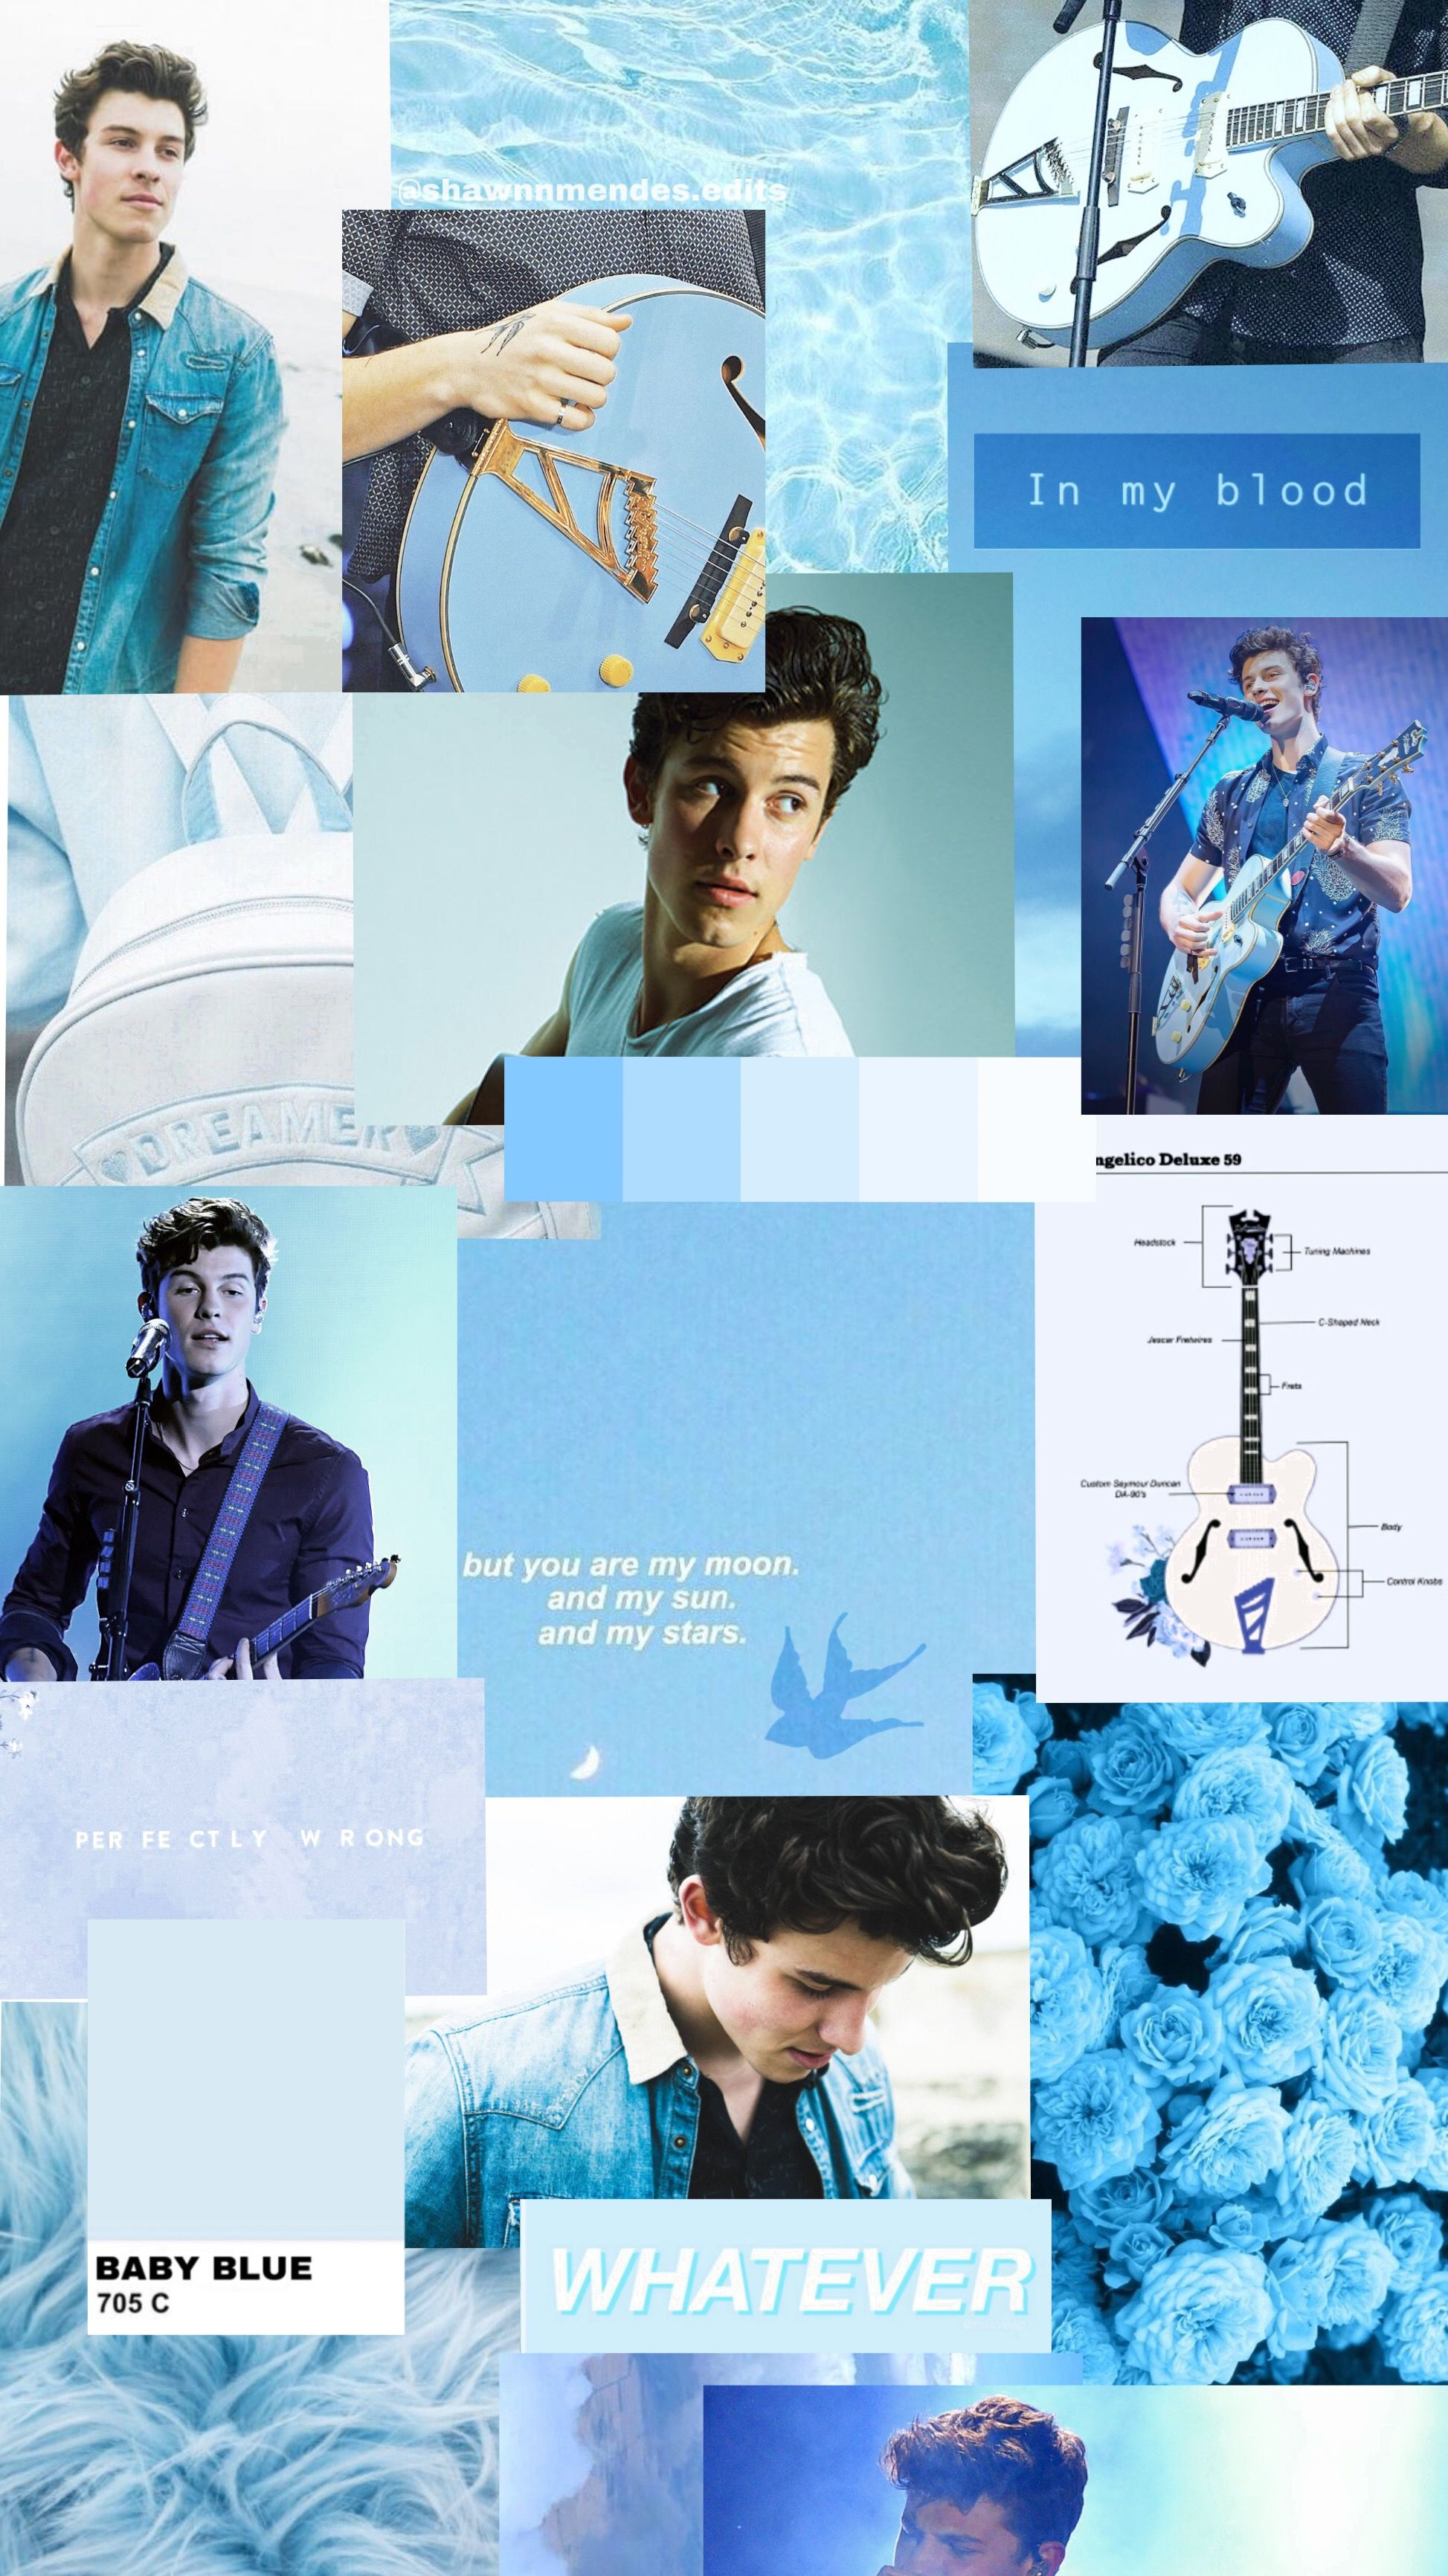 Shawn Mendes aesthetic blue 💙 IG ...